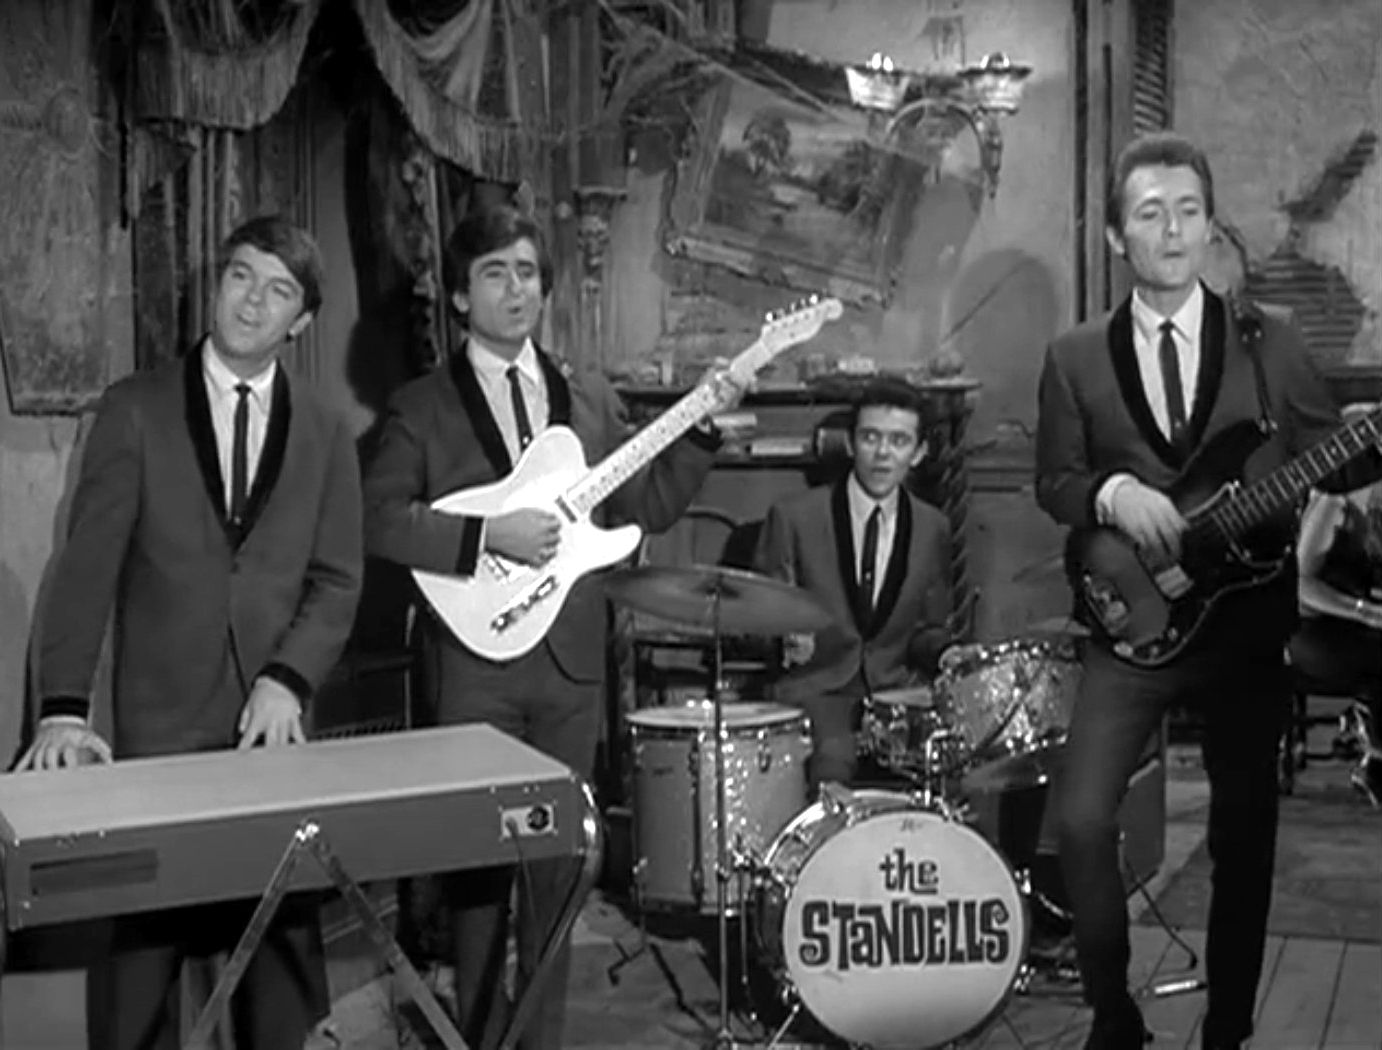 The Standells, March 1965